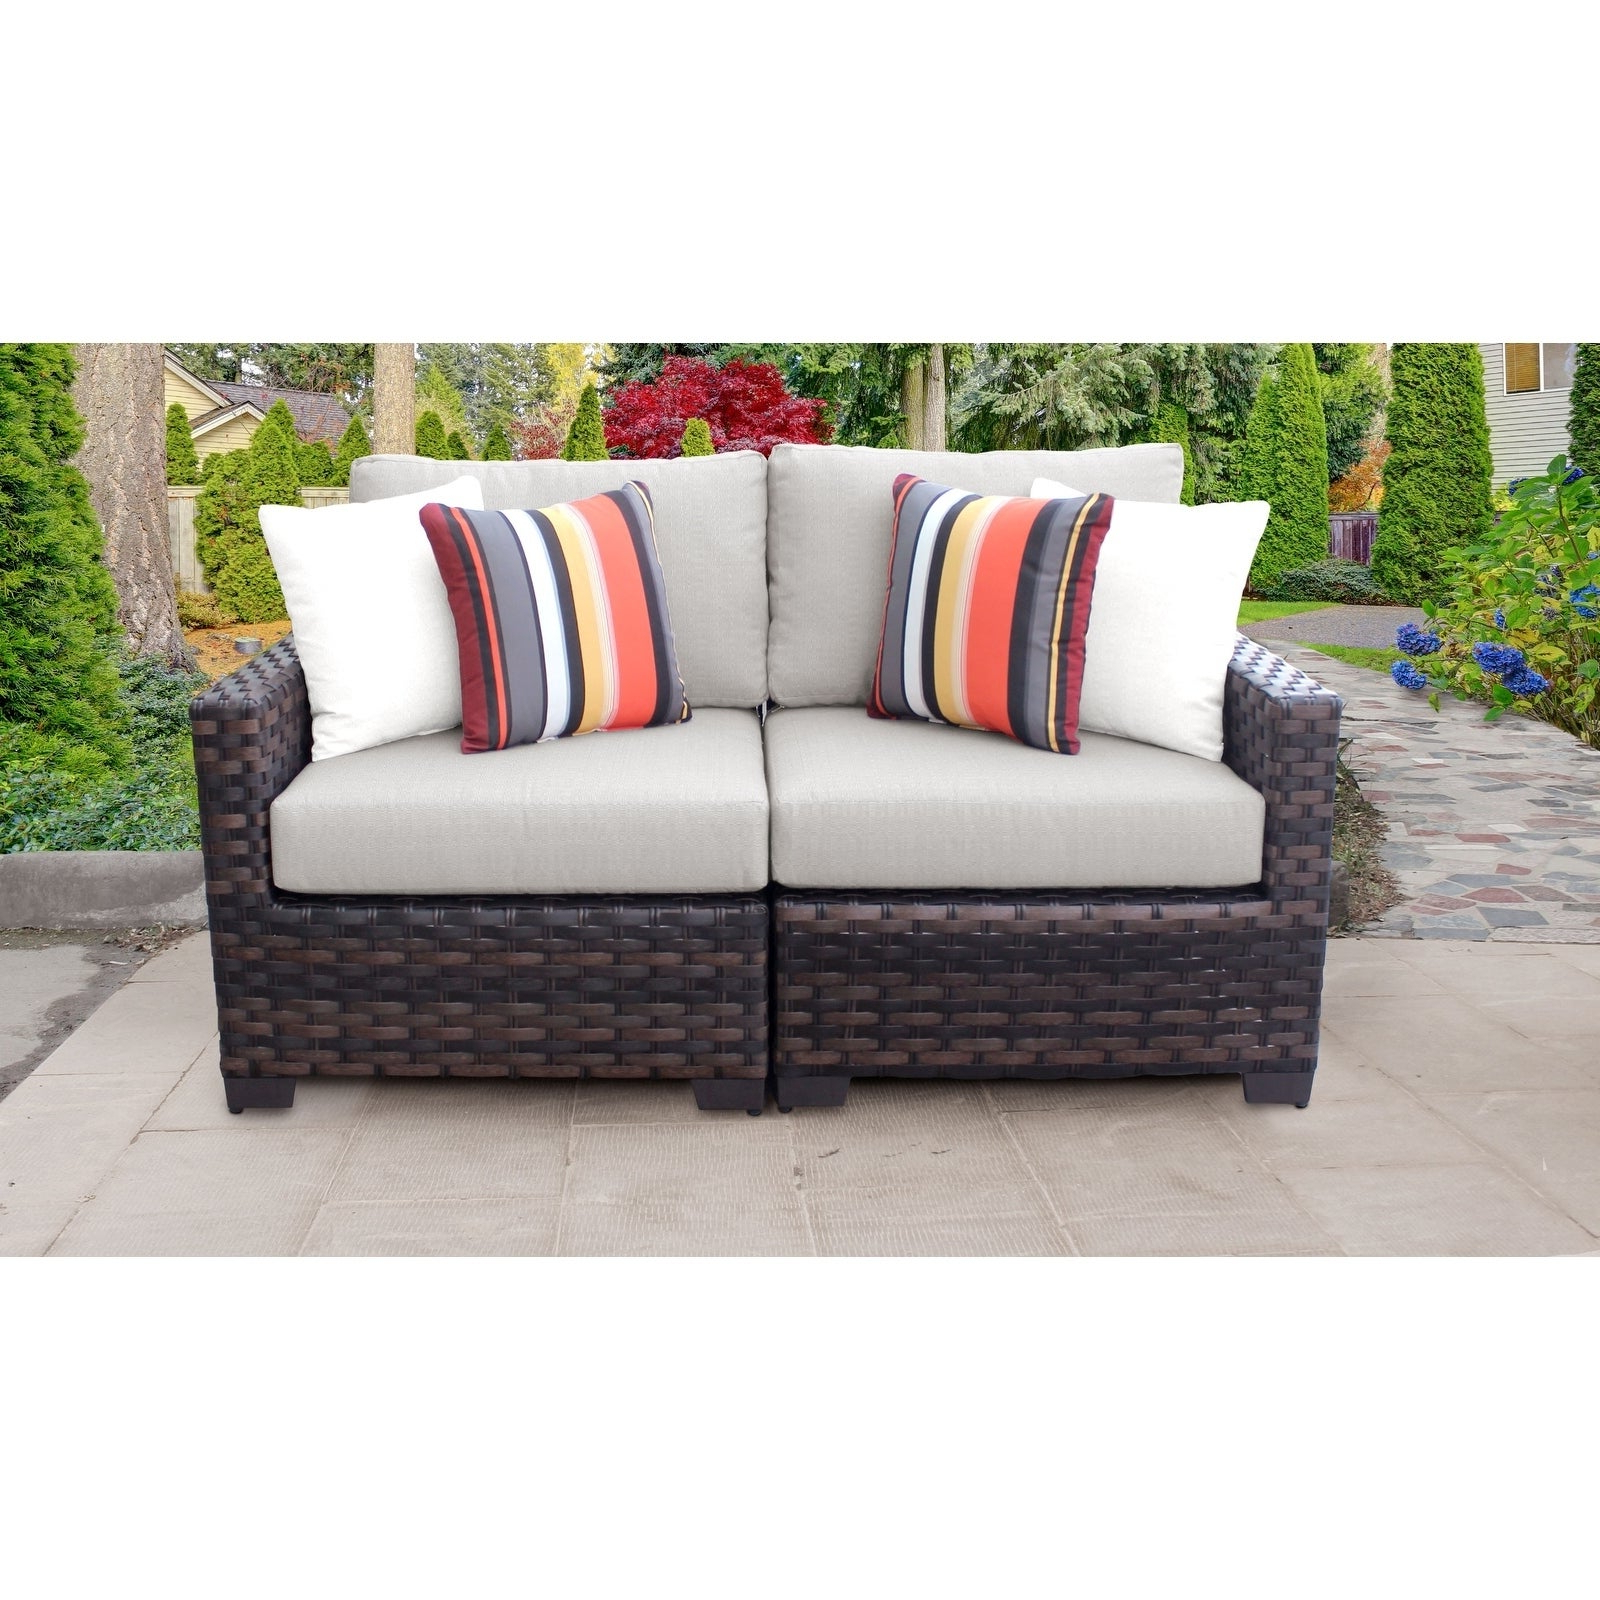 Oreland Patio Sofas With Cushions Pertaining To Most Recent Kathy Ireland River Brook 2 Piece Outdoor Wicker Patio Furniture Set 02A (View 14 of 20)